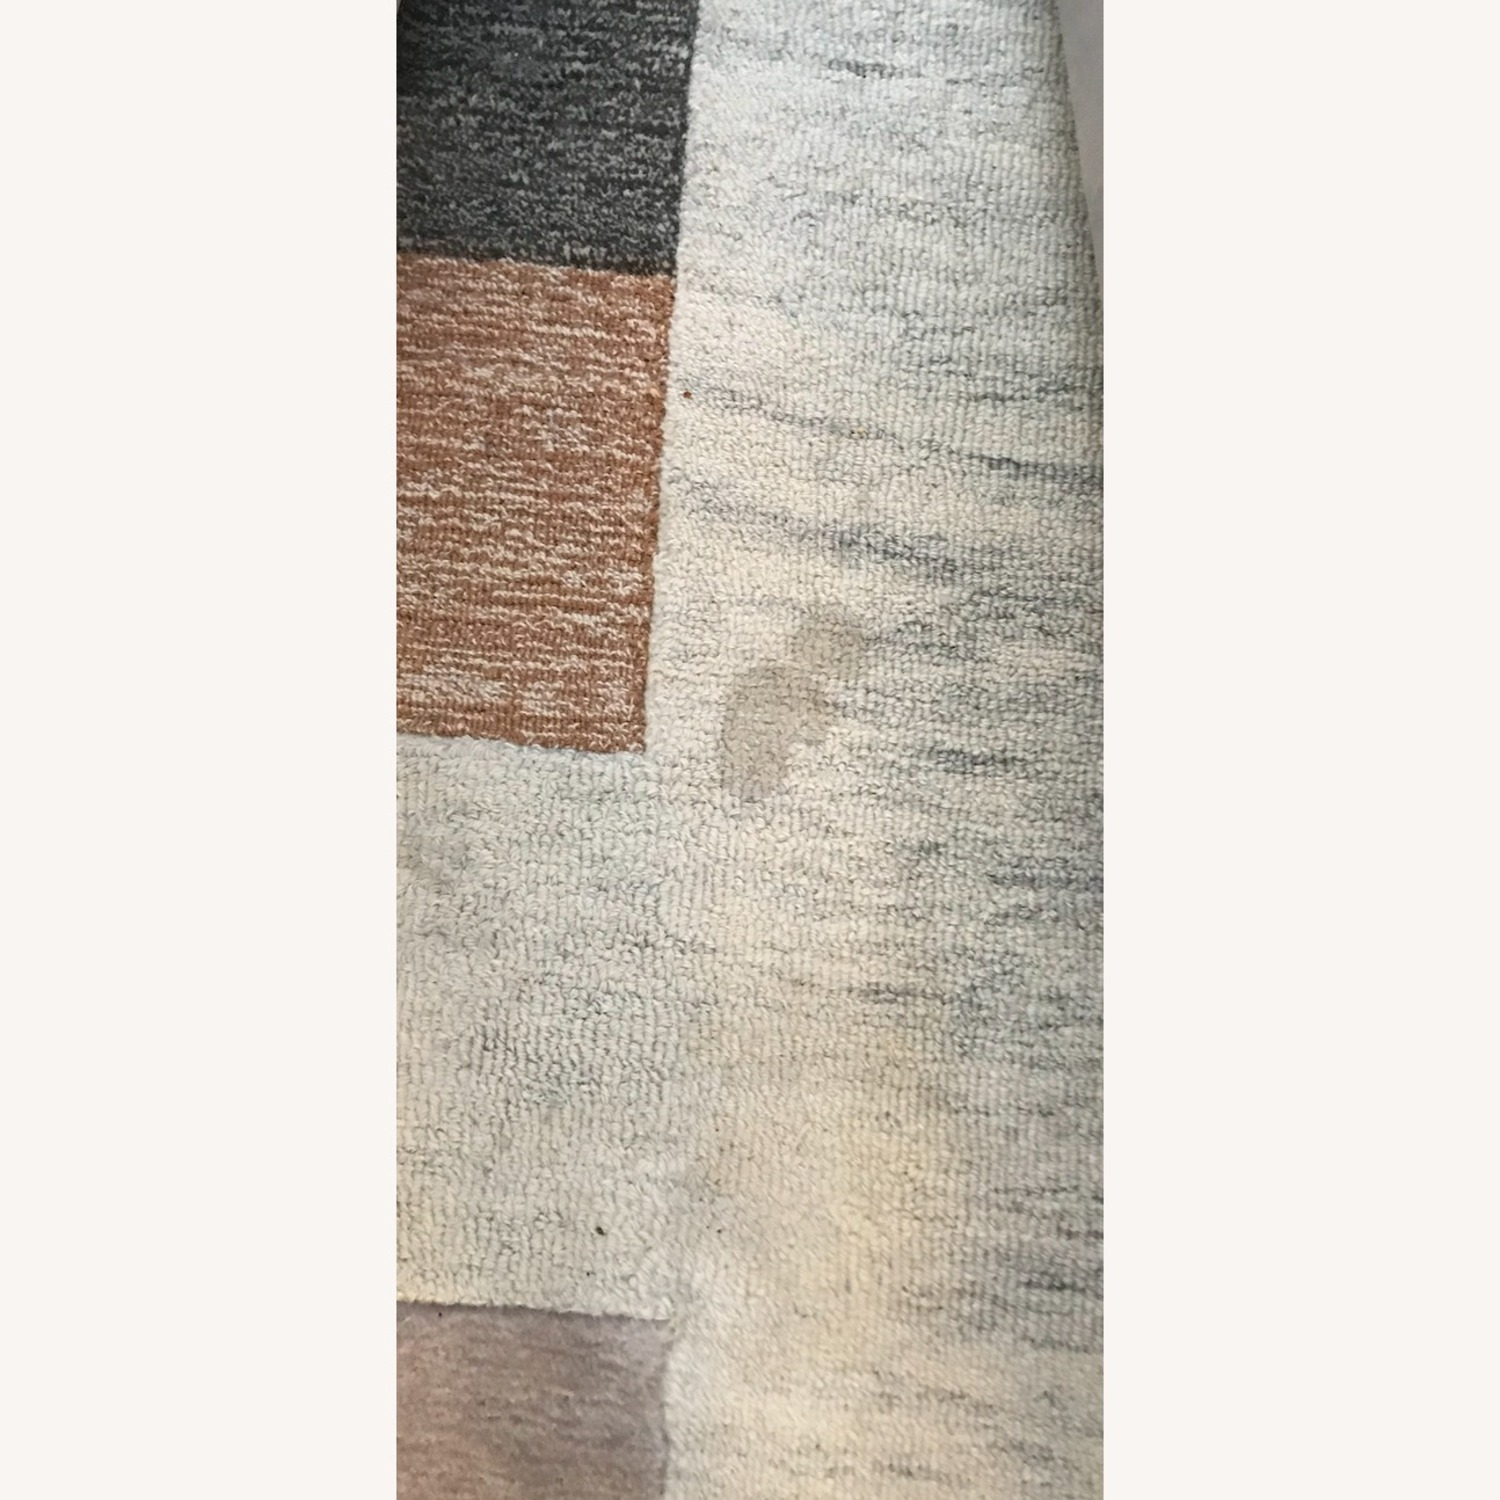 West Elm Capstone Rug in Dusty Blush - image-2